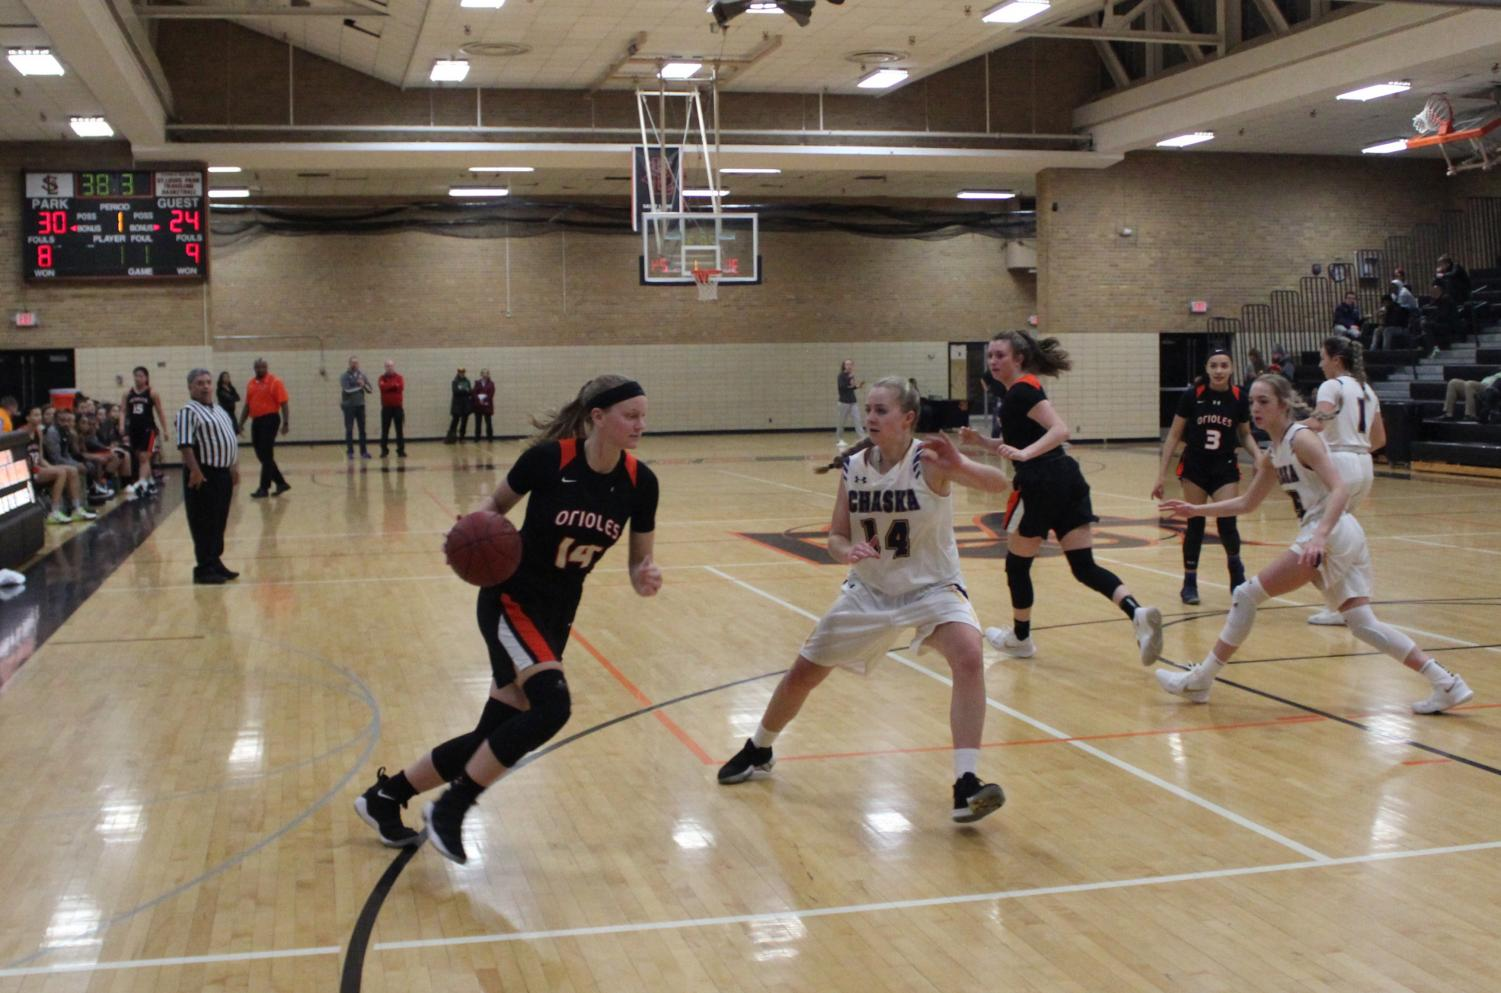 Junior Lindsey Olson dribbles past a Chaska defensive player. The Orioles won 74-61 on Jan. 16.